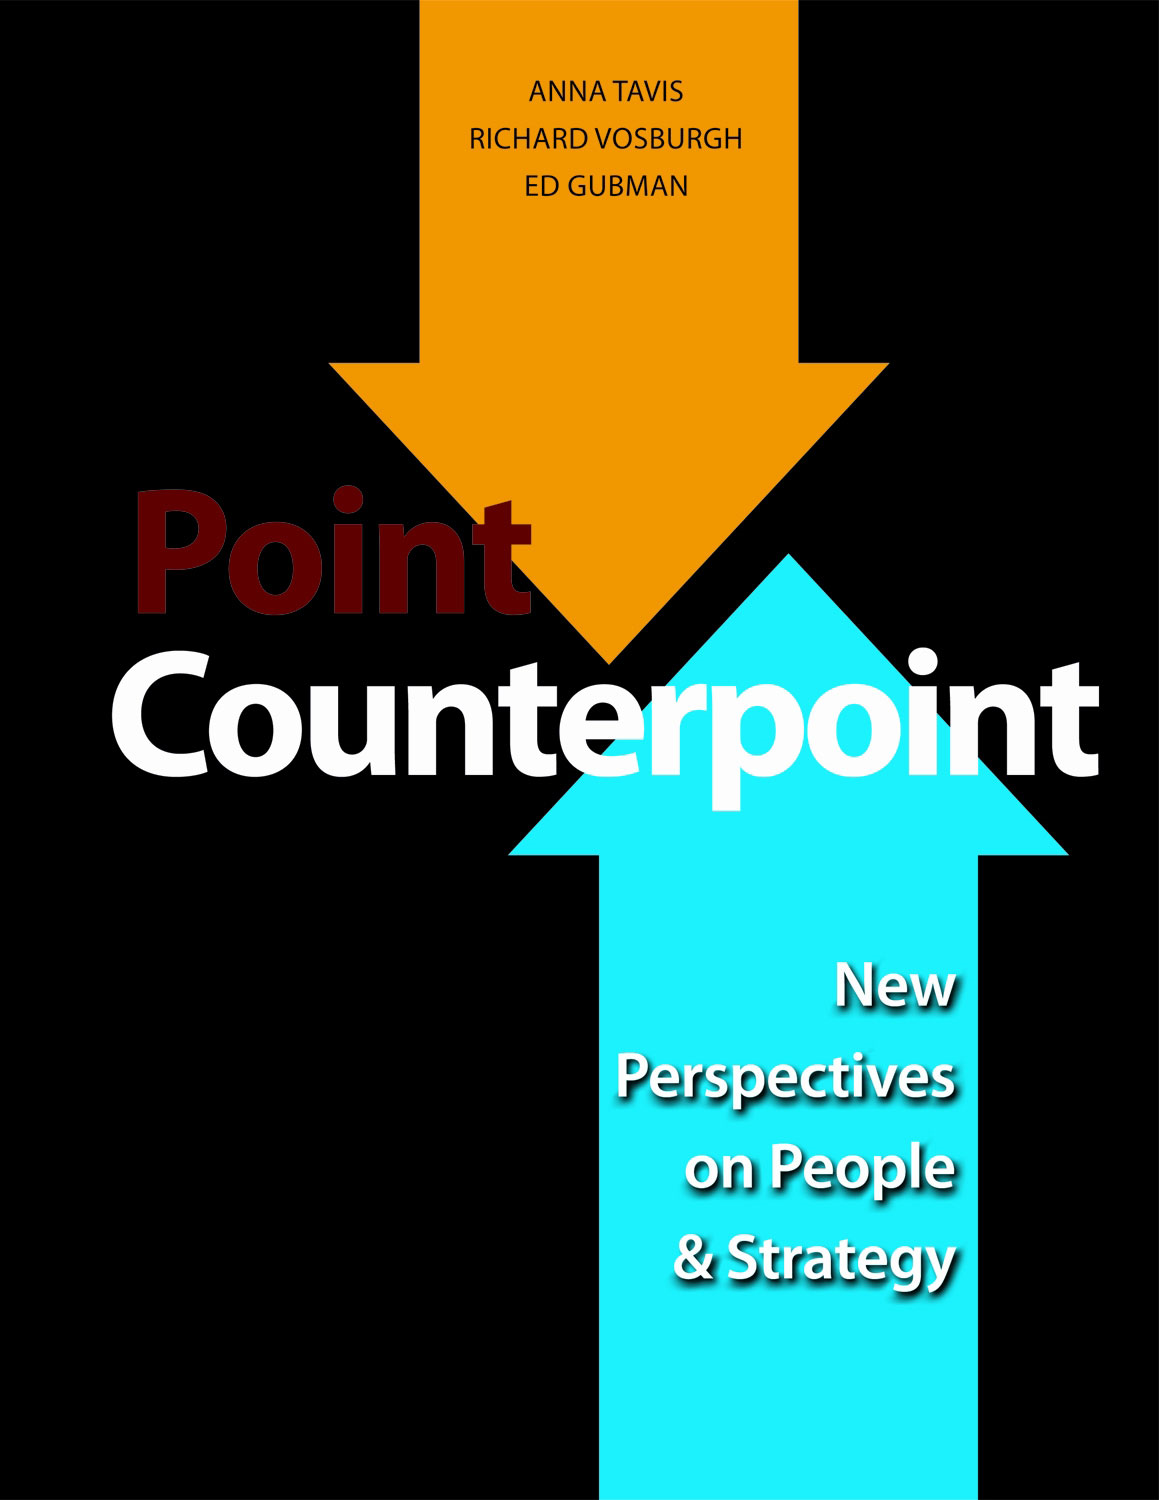 Point Counterpoint: New Perspectives on People & Strategy